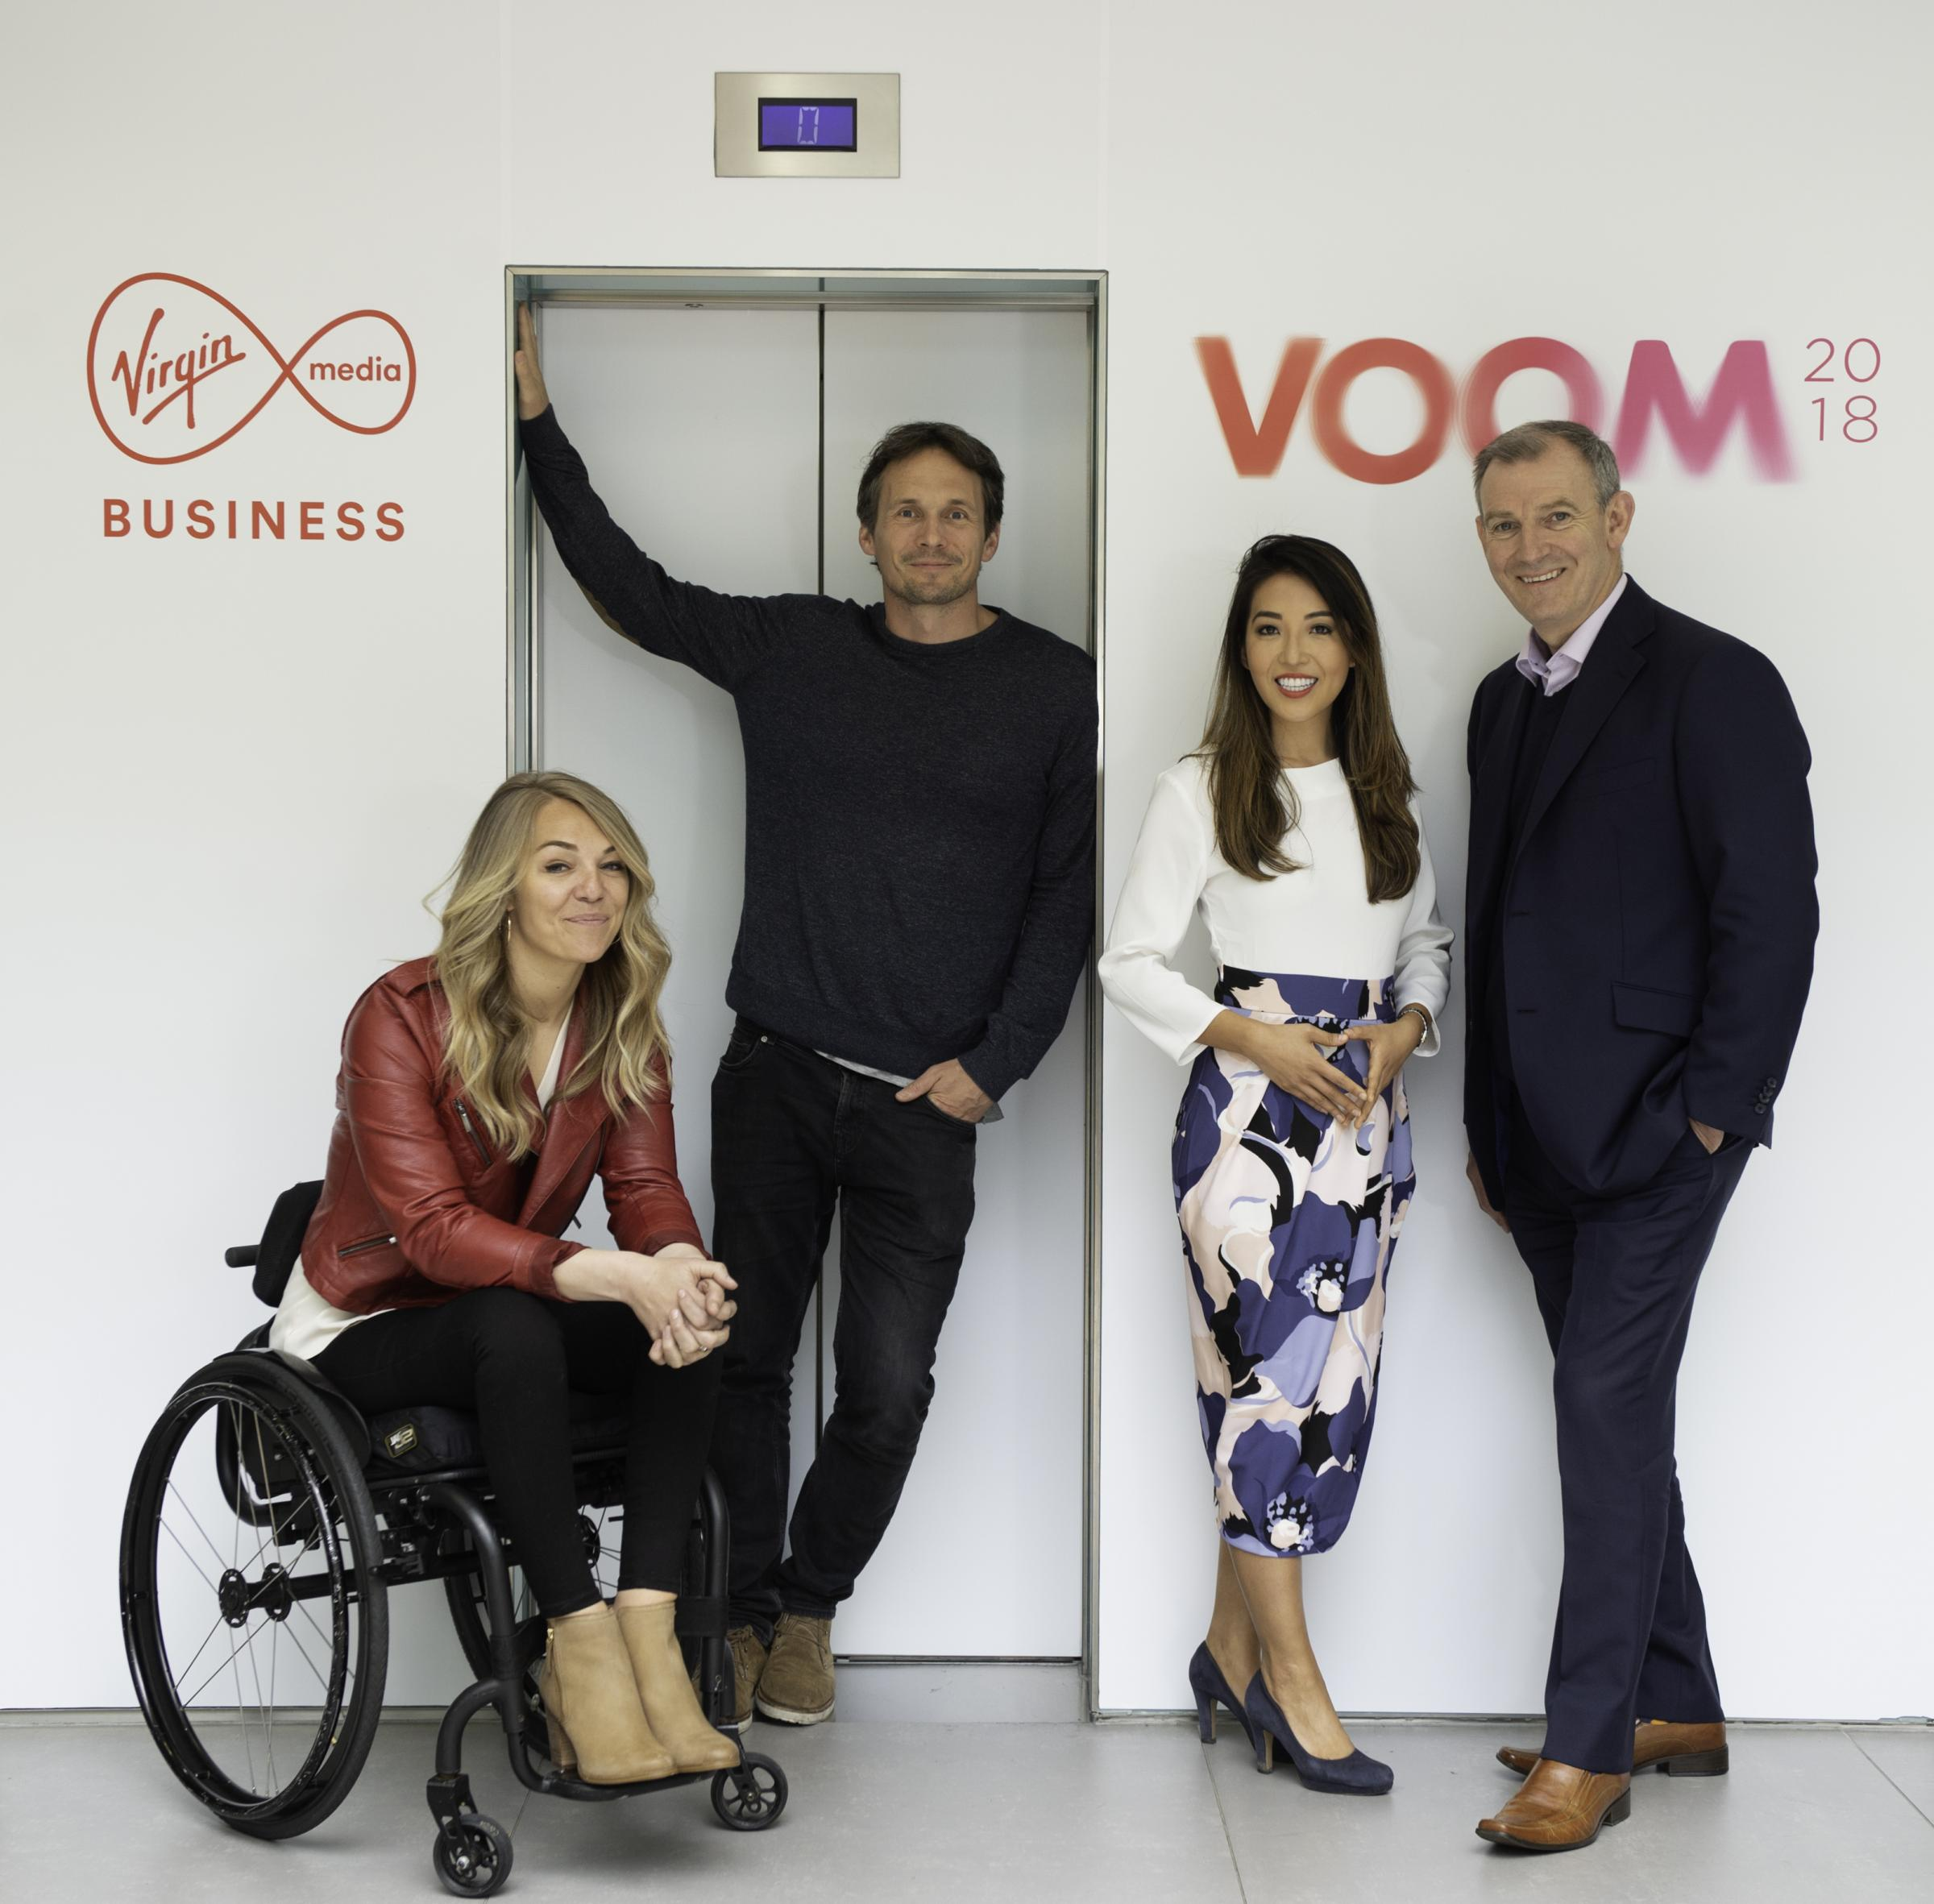 Virgin Media Business Voom 2018 JudgesL-R: Sophie Morgan, C4 Paralympic presenter & entrepreneurRichard Reed, Co-founder Innocent Drinks & Partner JamJar InvestmentsSusie Ma, Founder Tropic Skincare (Apprentice Finalist 2011)And Peter Kelly,